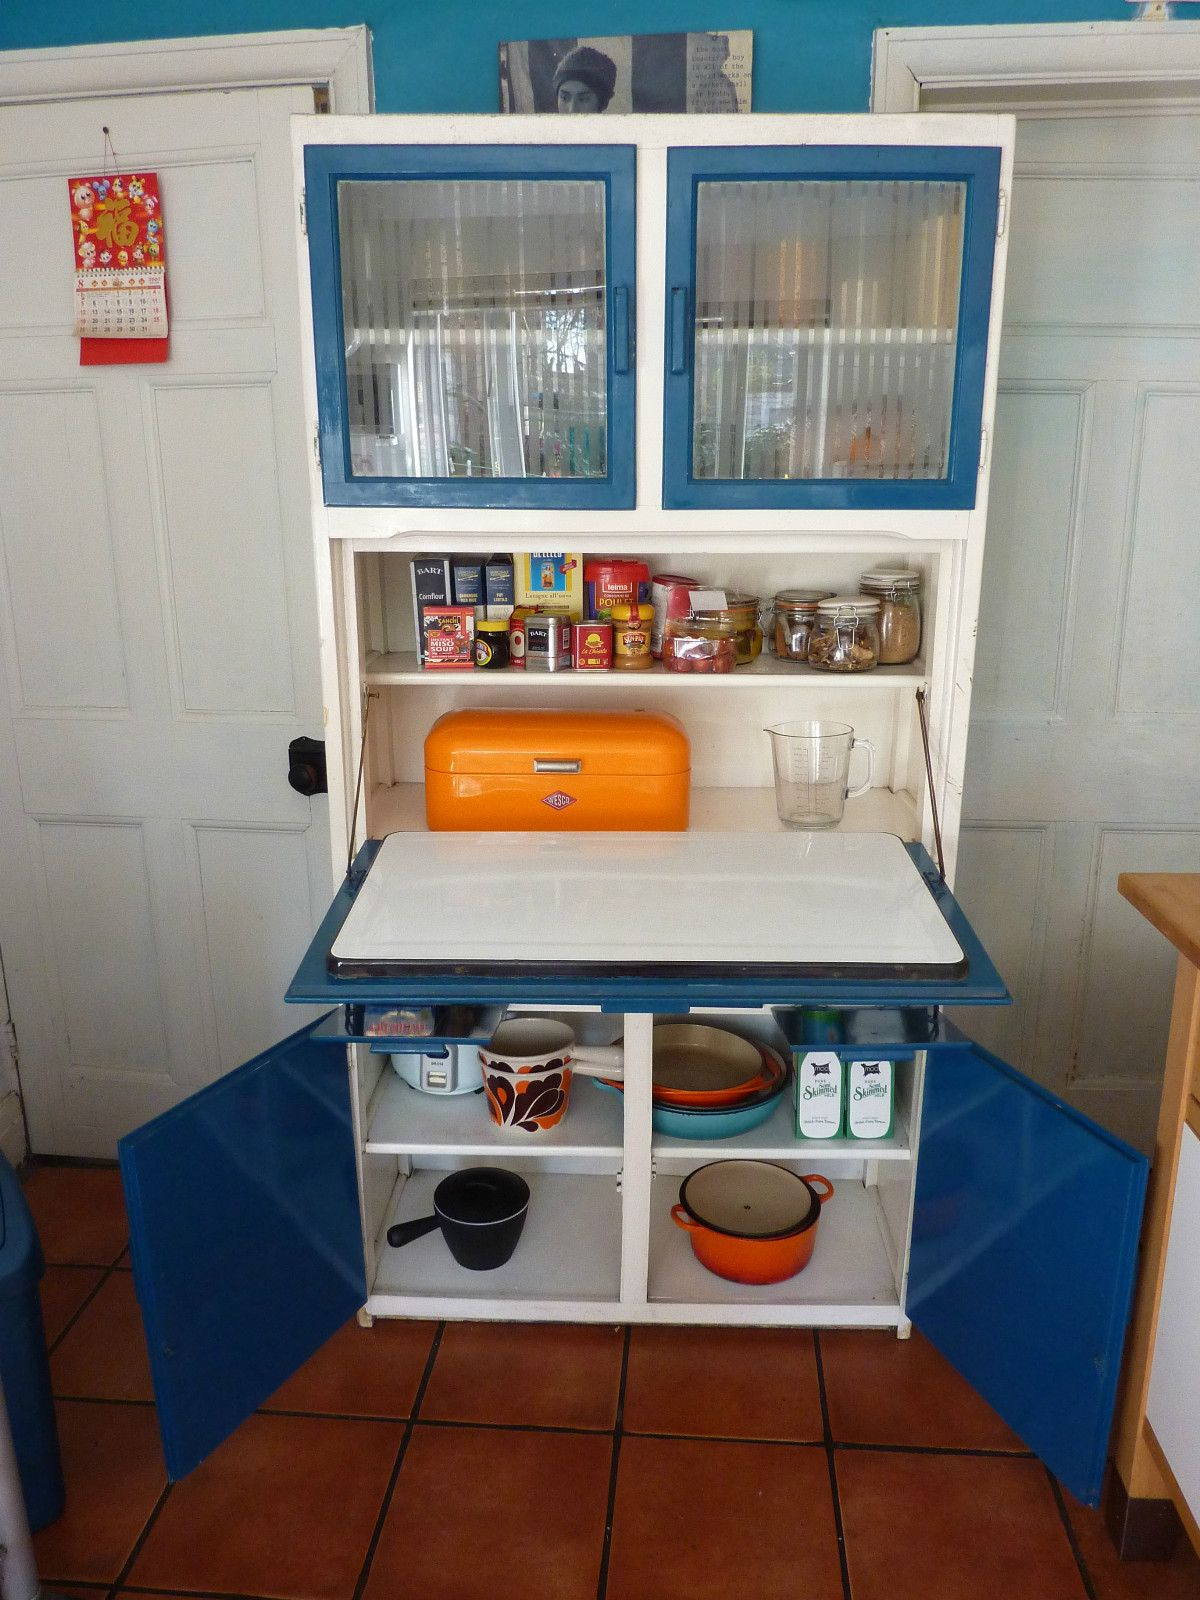 S Kitchen Cabinets Adorable Retro Vintage1950's 1960's Kitchen Larder Cabinet Cupboard Inspiration Design